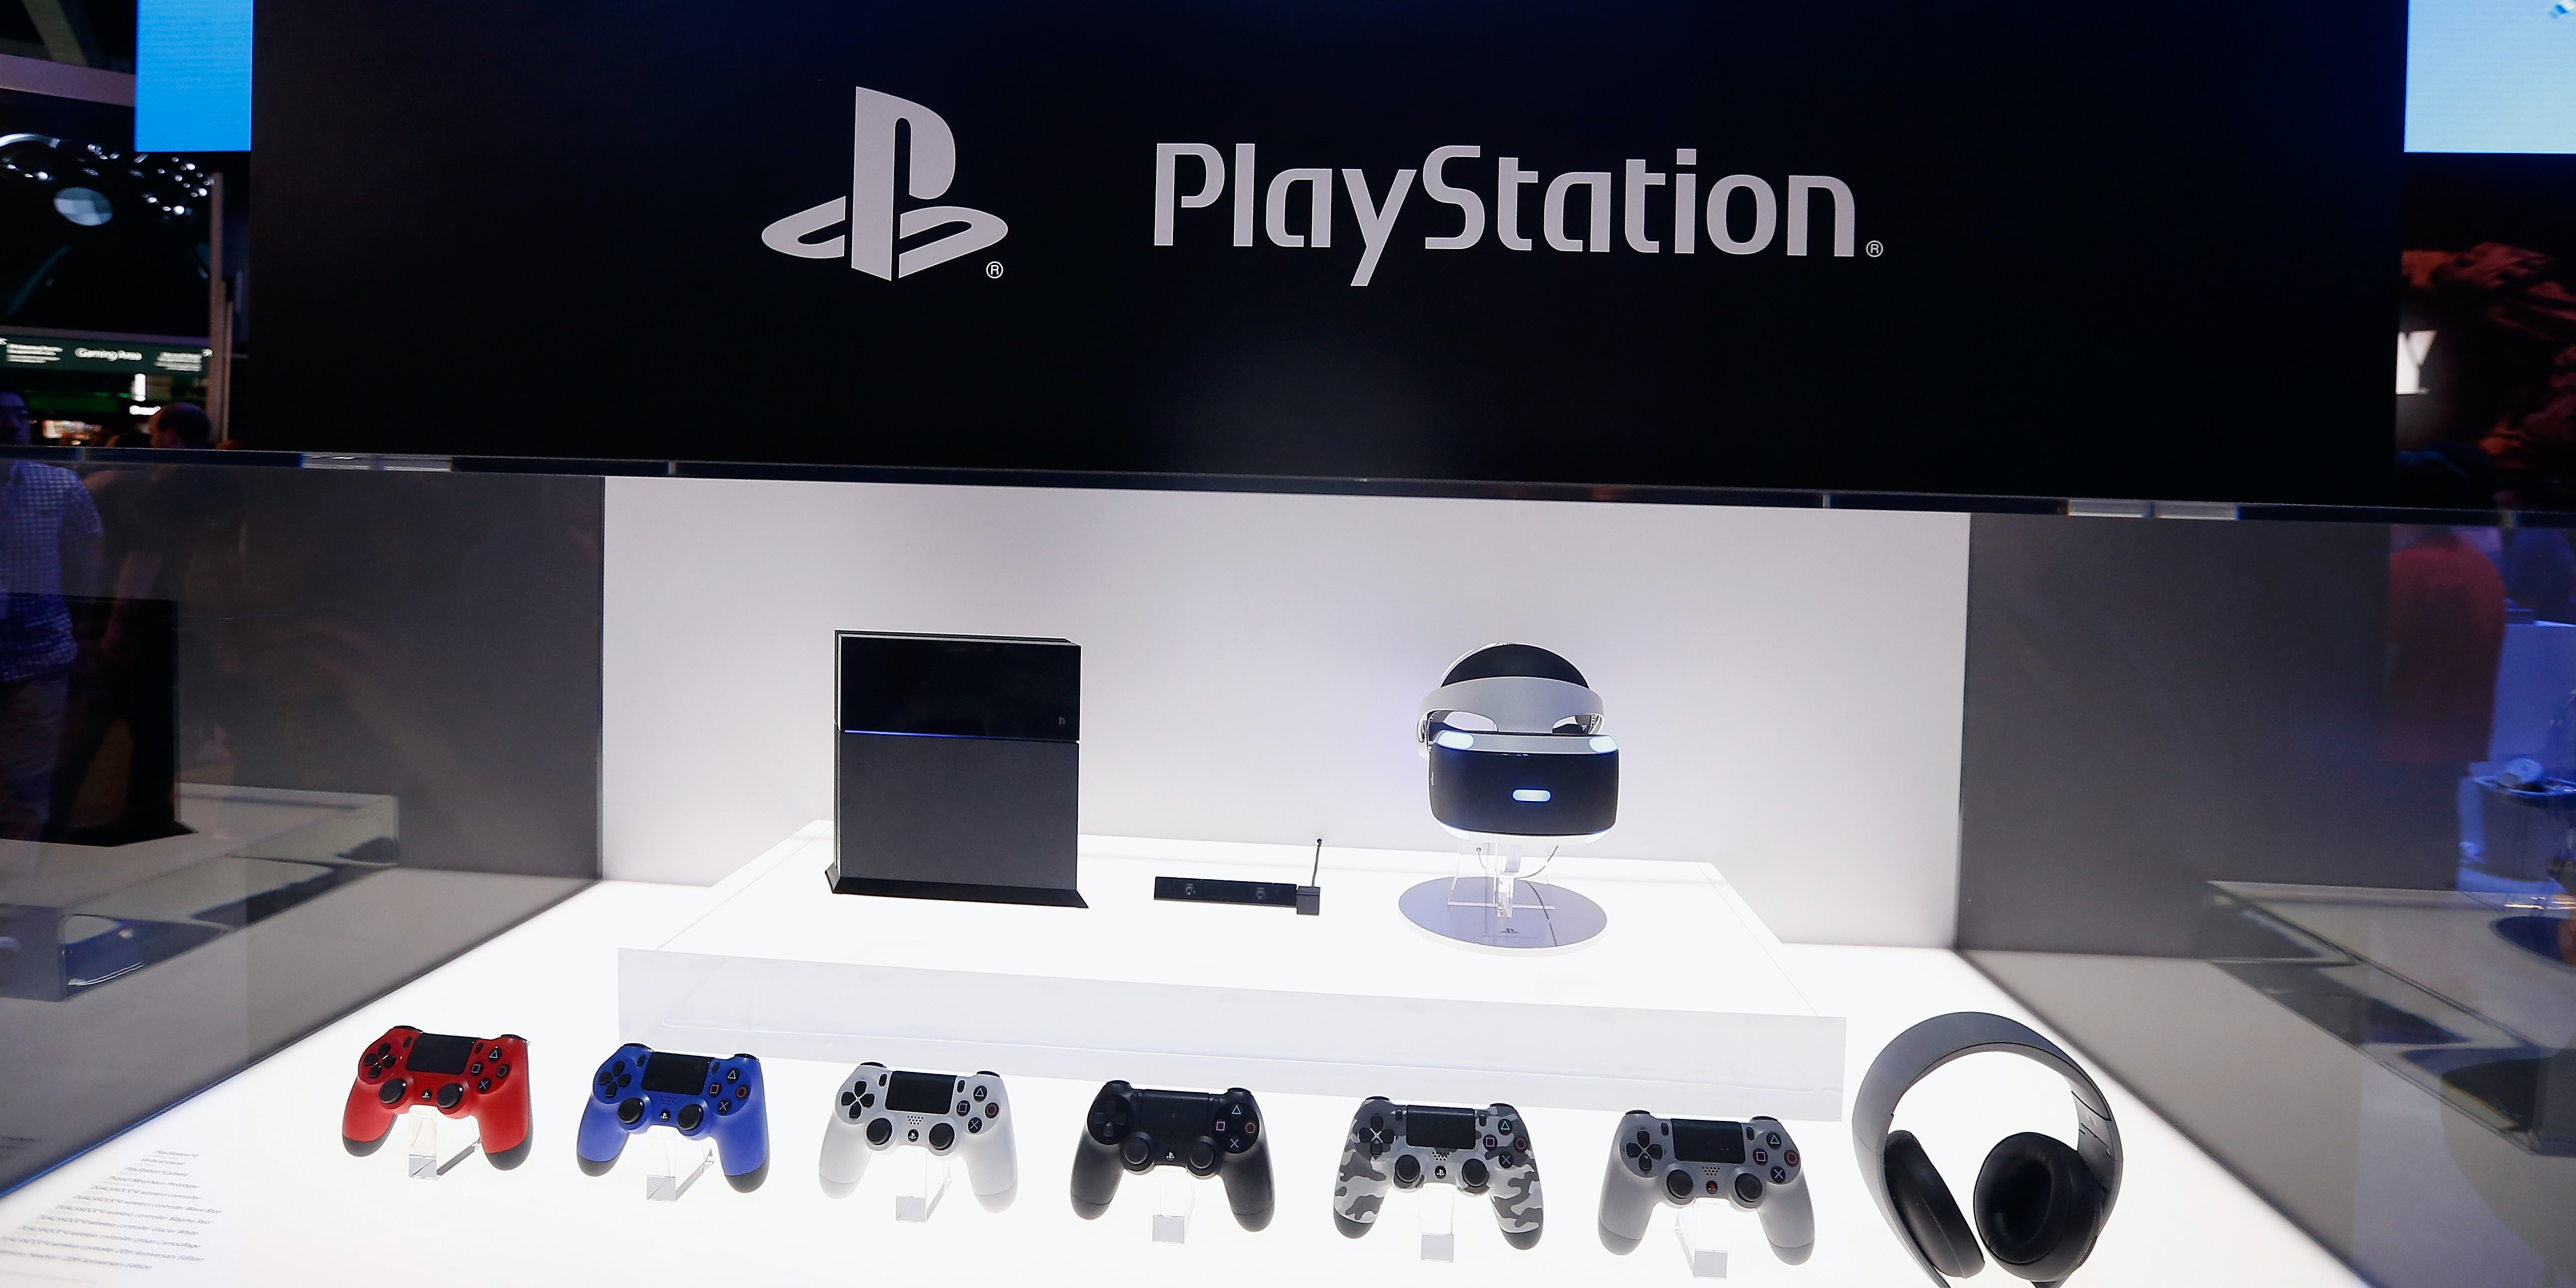 LOS ANGELES, CA - JUNE 16:  Detail of the Sony PlayStation 4 and peripherals, including the virtual reality 'Project Morpheus', during the Annual Gaming Industry Conference E3 at  the Los Angeles Convention Center on June 16, 2015 in Los Angeles, California. The Los Angeles Convention Center will be hosting the annual Electronic Entertainment Expo (E3) which focuses on gaming systems and interactive entertainment, featuring introductions to new products and technologies.  (Photo by Christian Petersen/Getty Images)